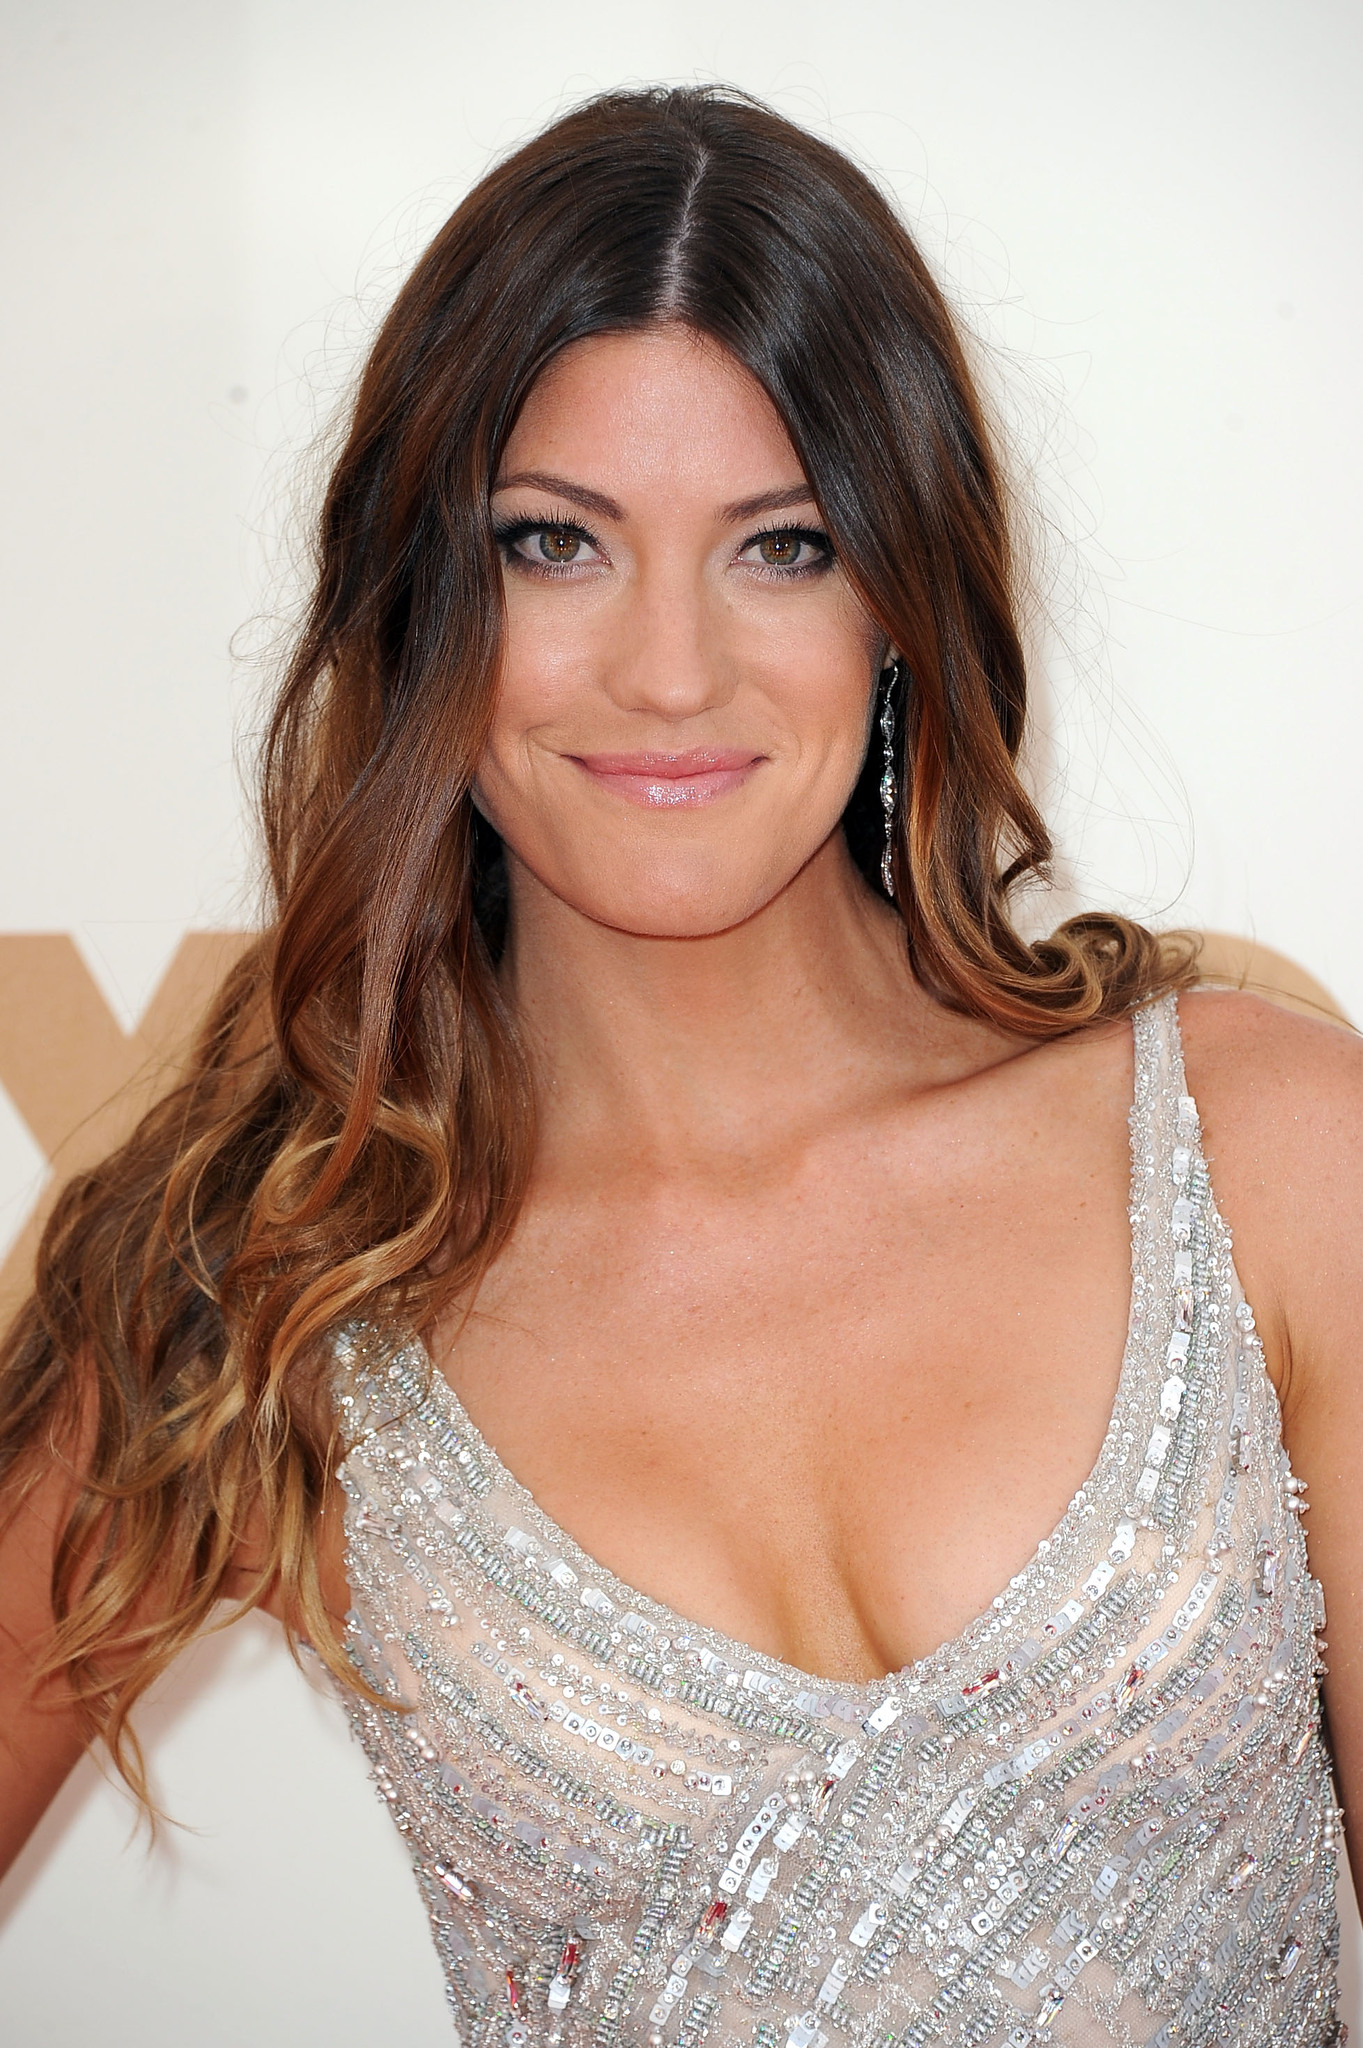 Image result for jennifer carpenter